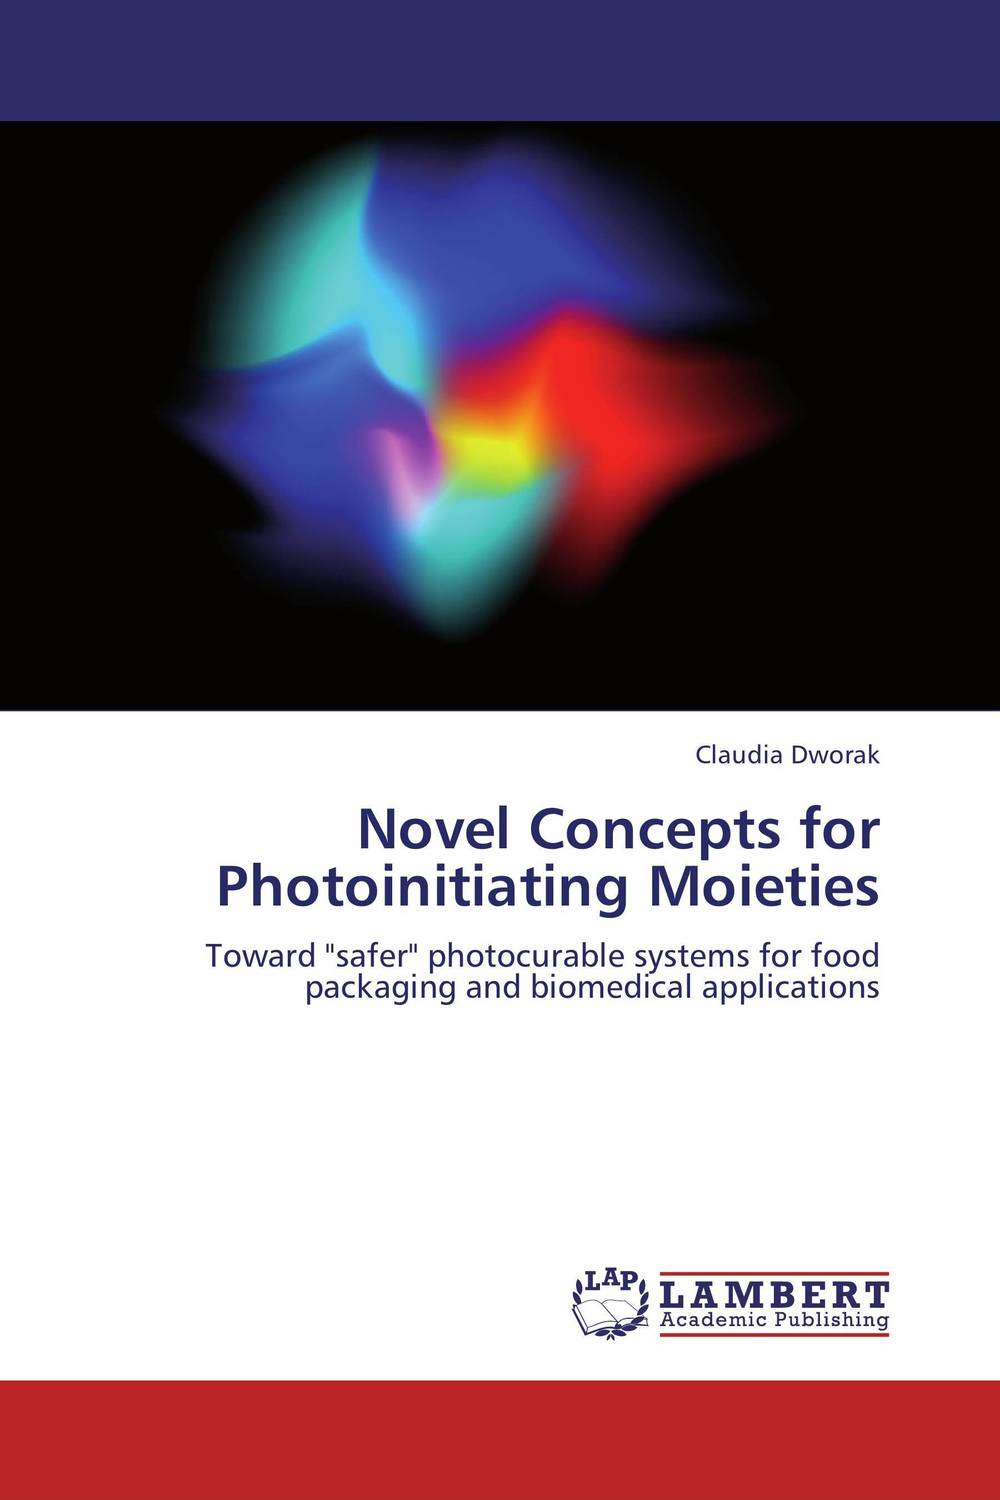 Novel Concepts for Photoinitiating Moieties the lonely polygamist – a novel